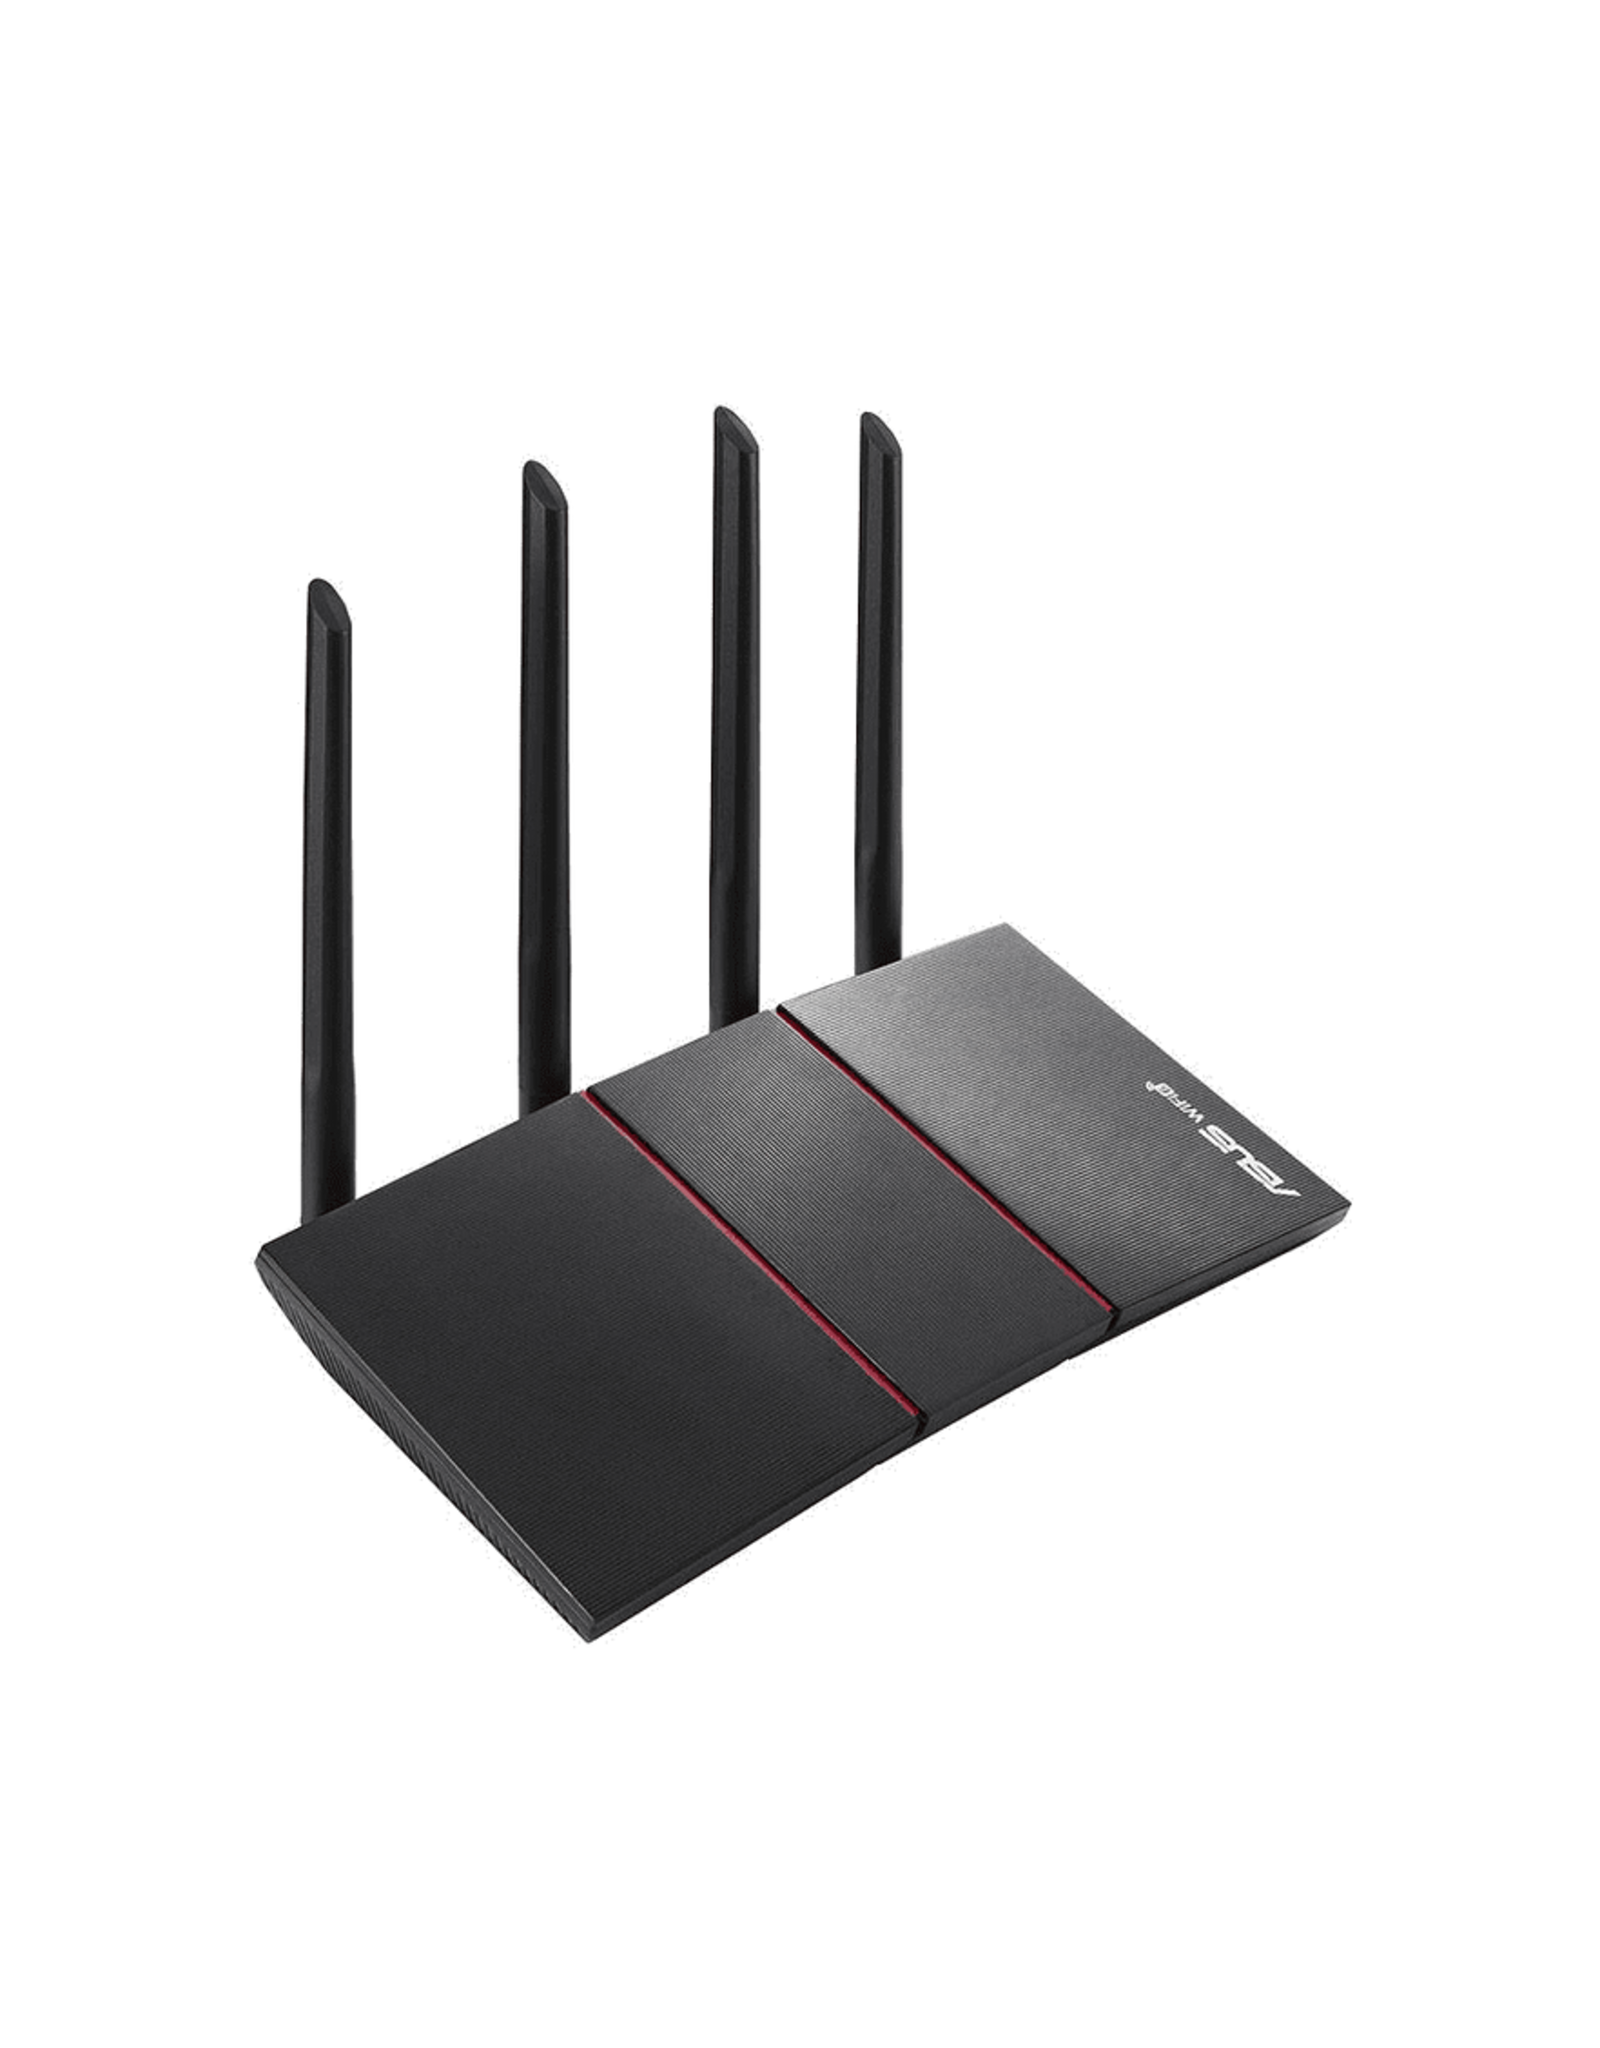 ASUS Wireless Router - ASUS AX1800 Dual Band WiFi 6 Router